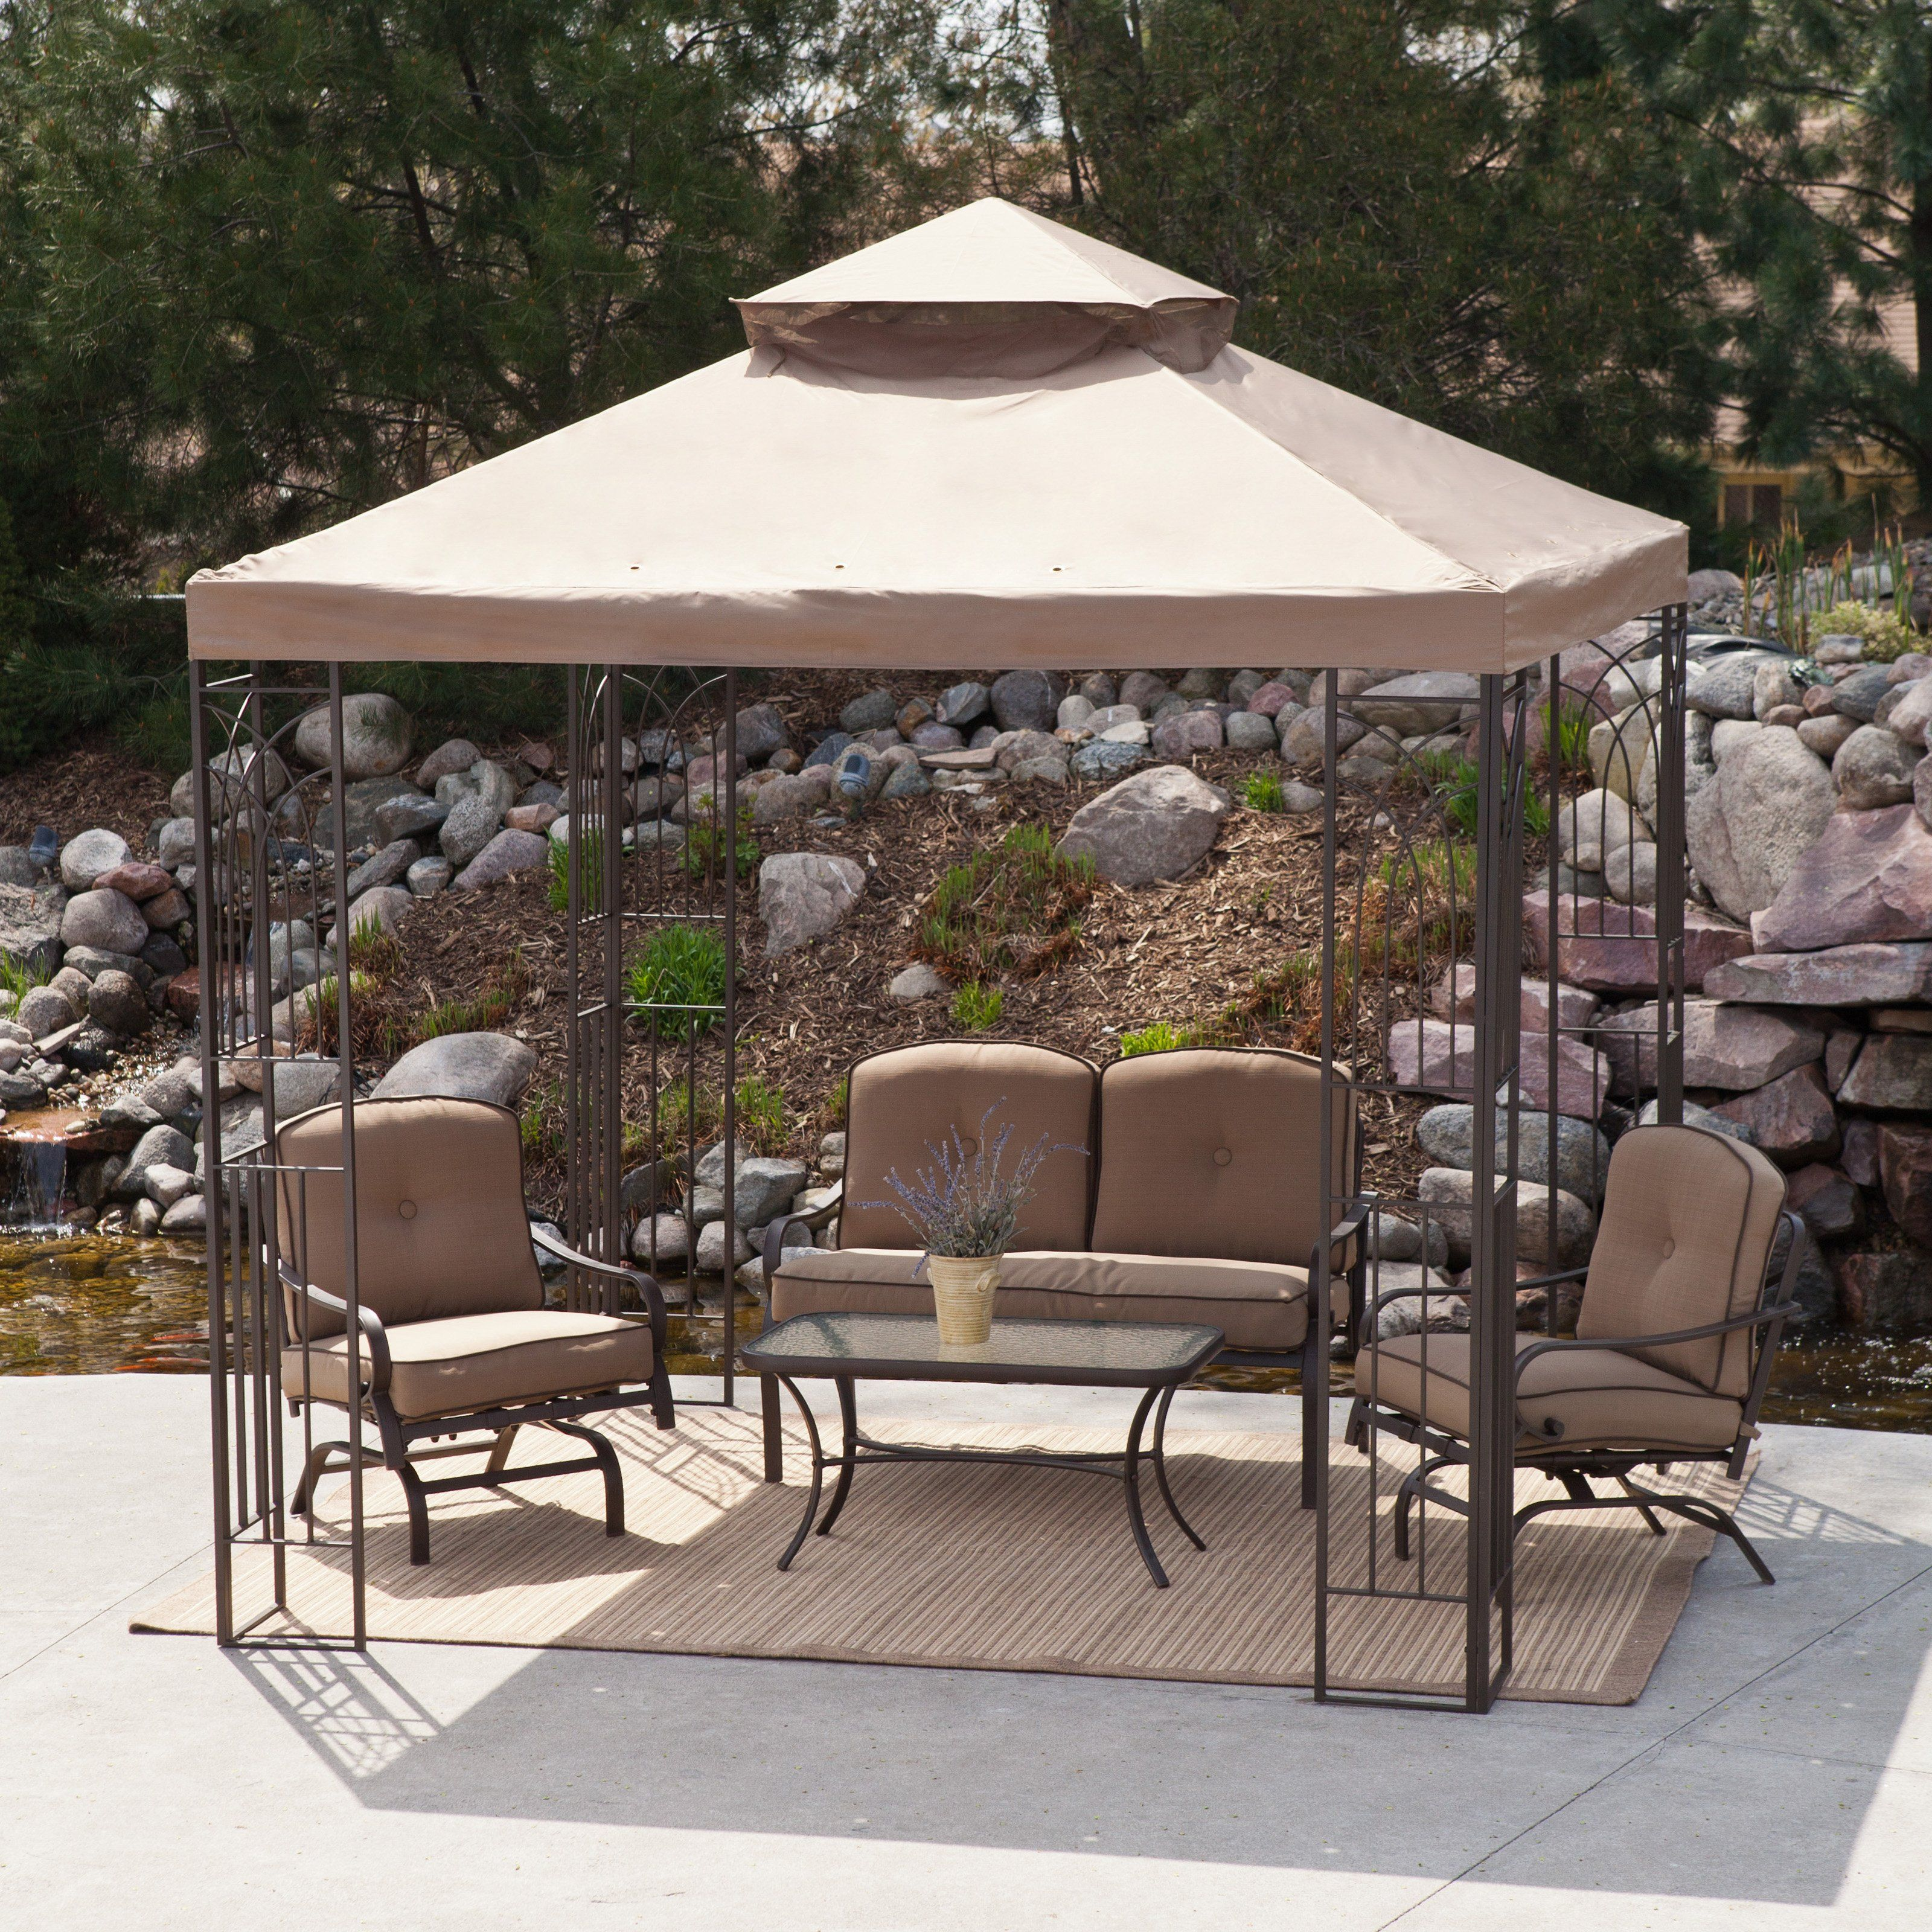 Prairie Grass 8 x 8 ft. Gazebo Canopy - $239.99 & Have to have it. Prairie Grass 8 x 8 ft. Gazebo Canopy - $239.99 ...